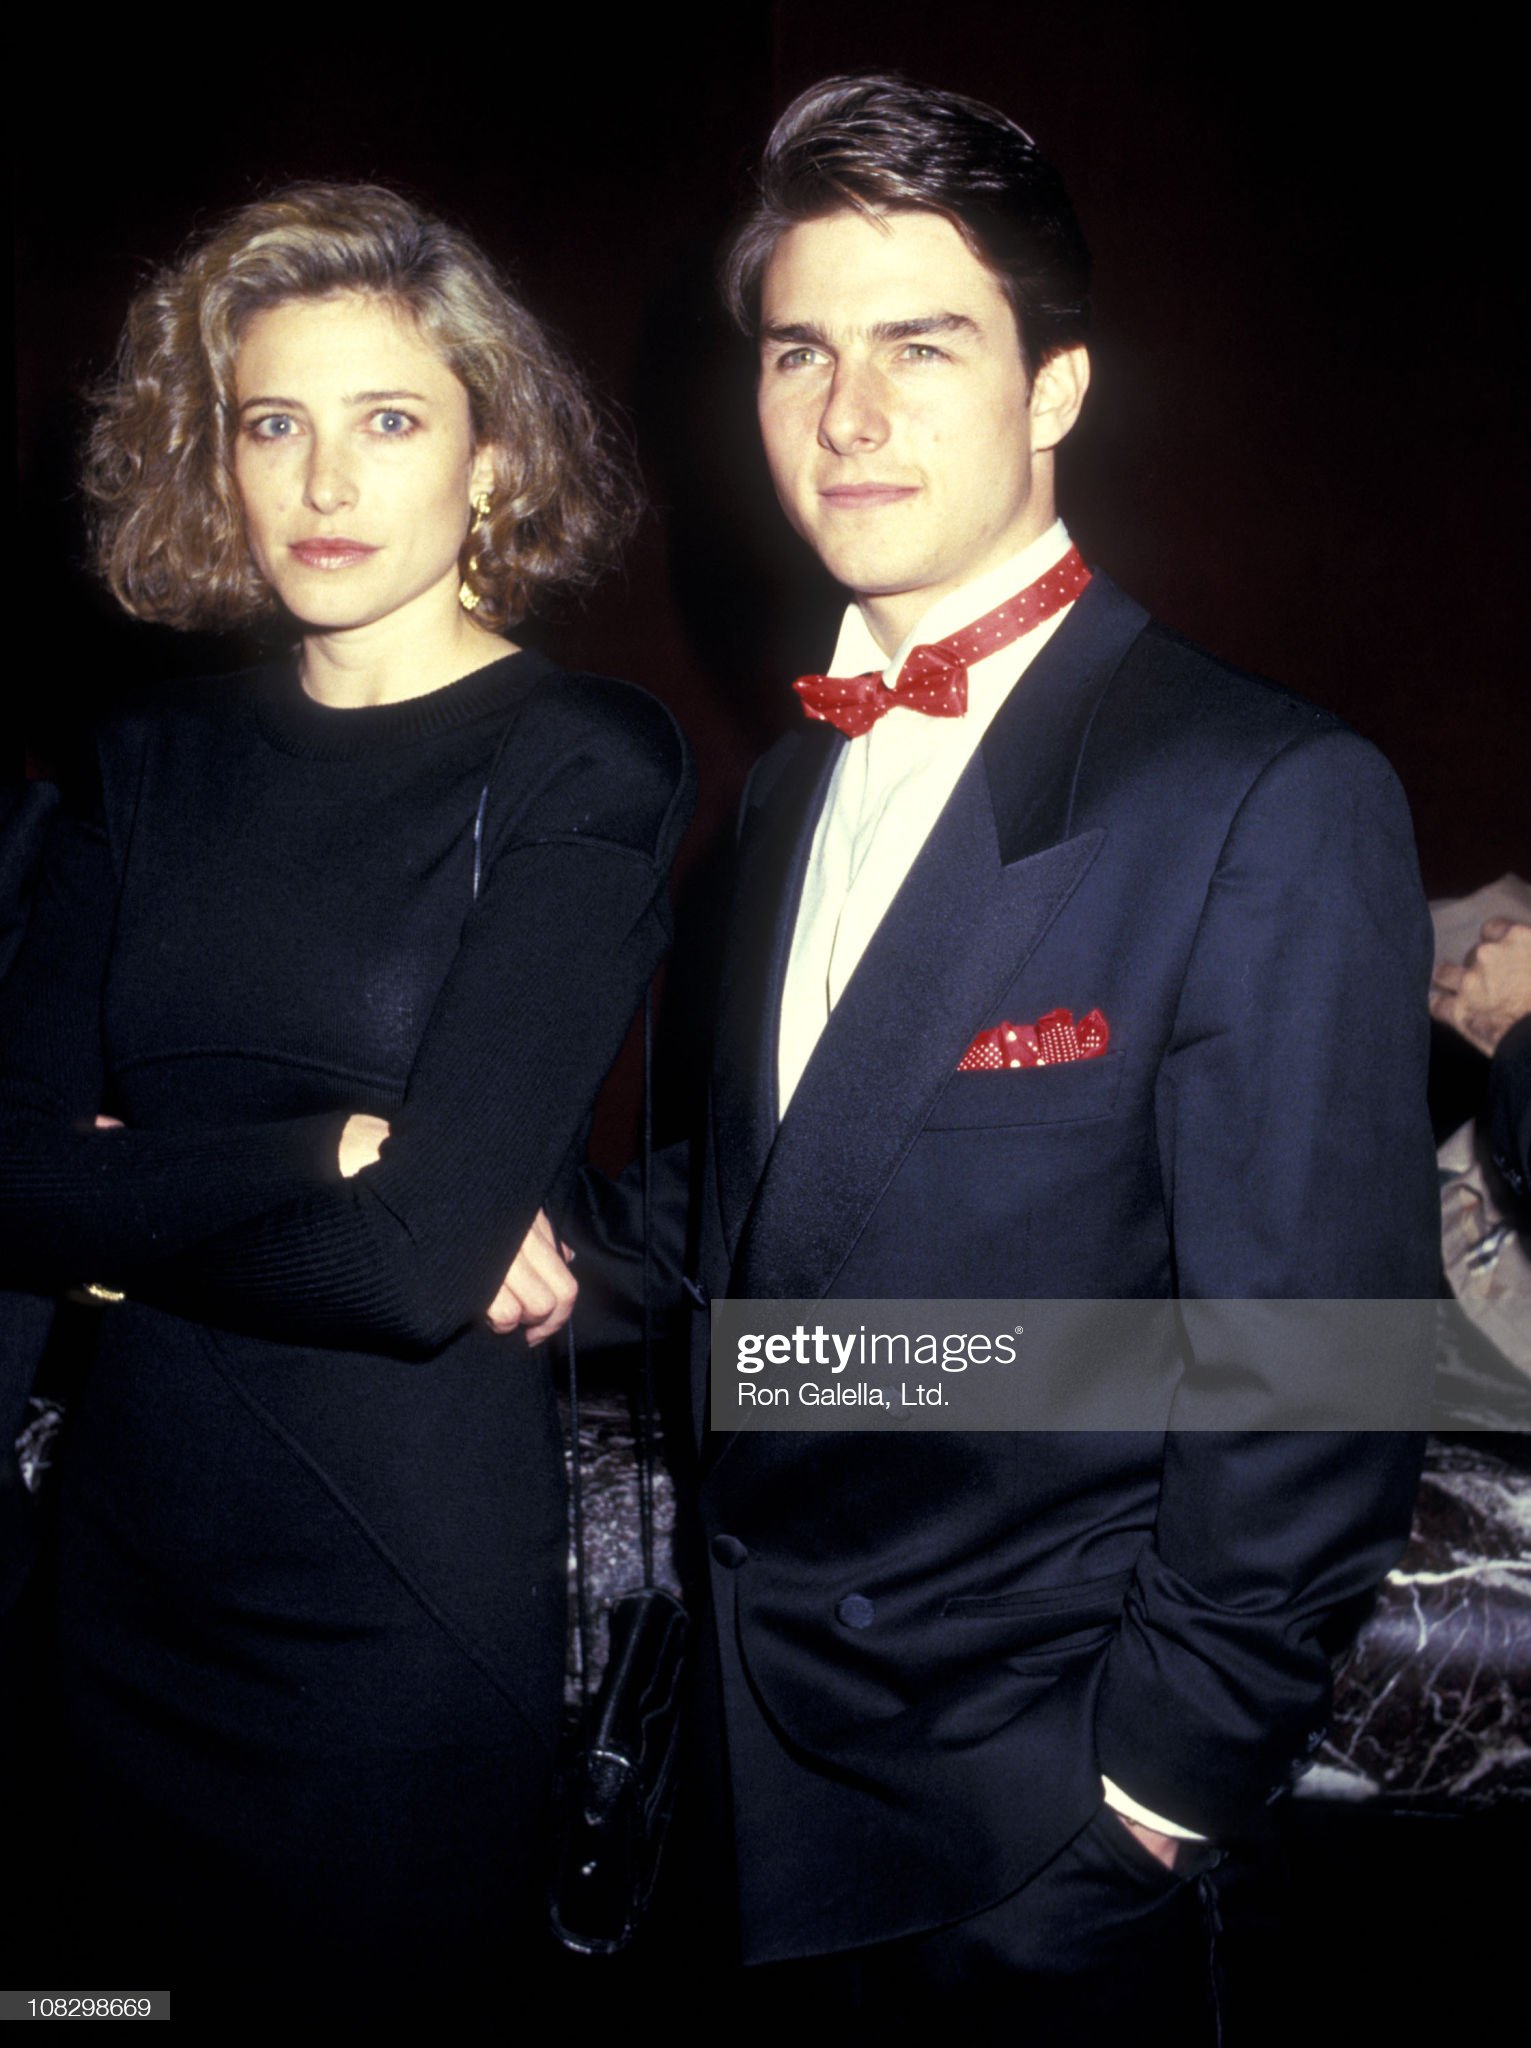 Tom Cruise (Galería de fotos) Actress-mimi-rogers-and-actor-tom-cruise-attend-the-american-museum-picture-id108298669?s=2048x2048